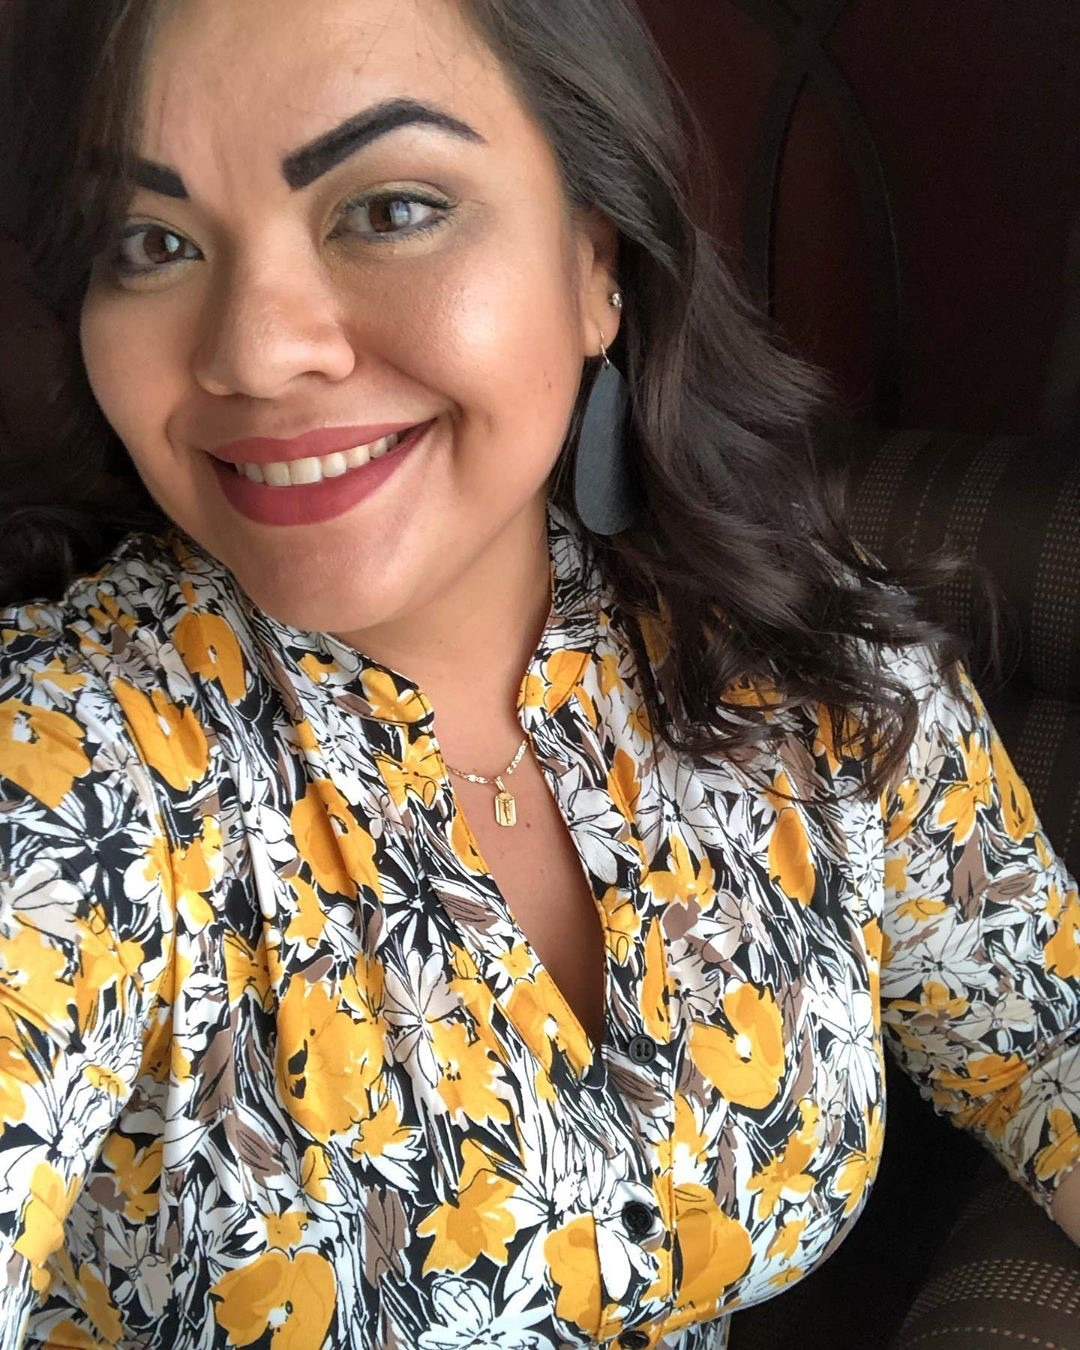 Keto Multicultural Influencer Feature: @Keto_Comadre